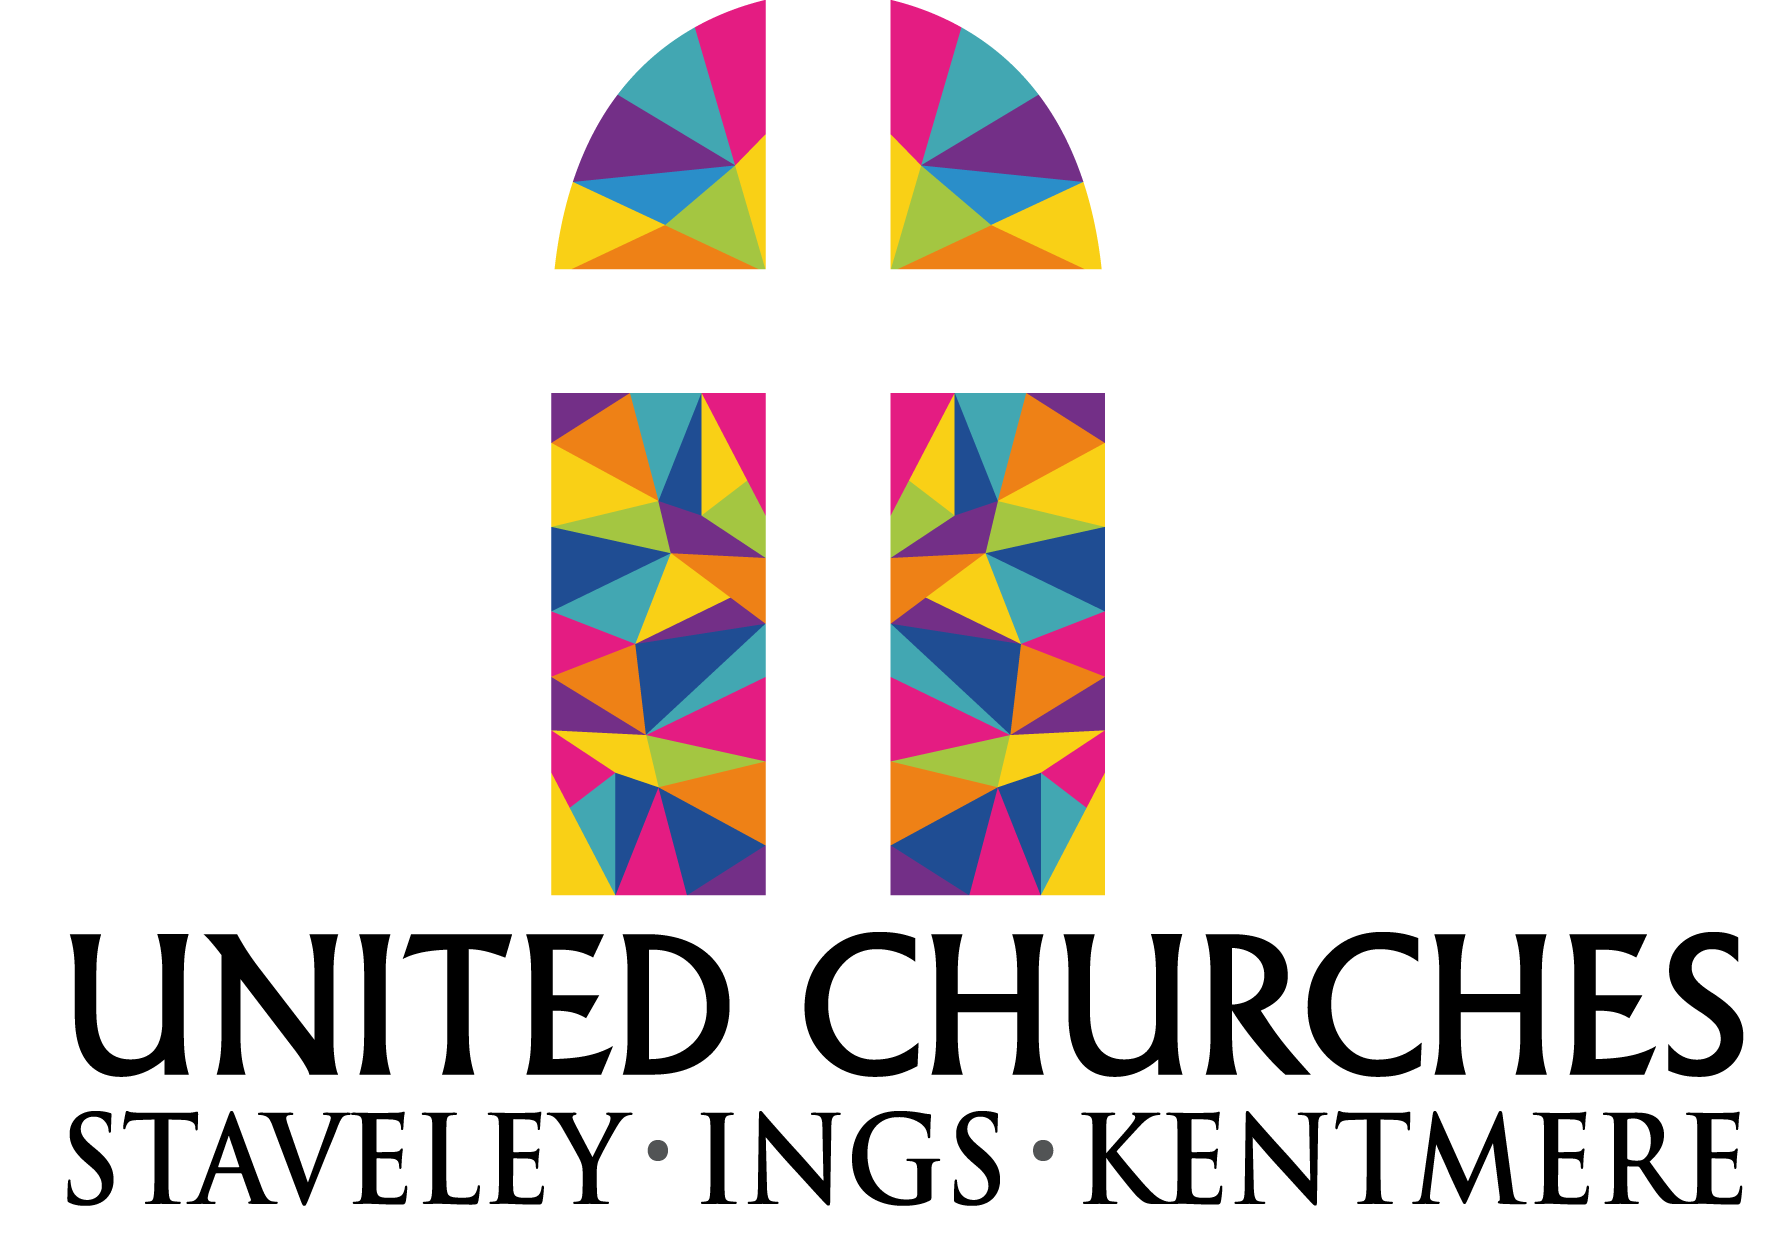 united churches logo